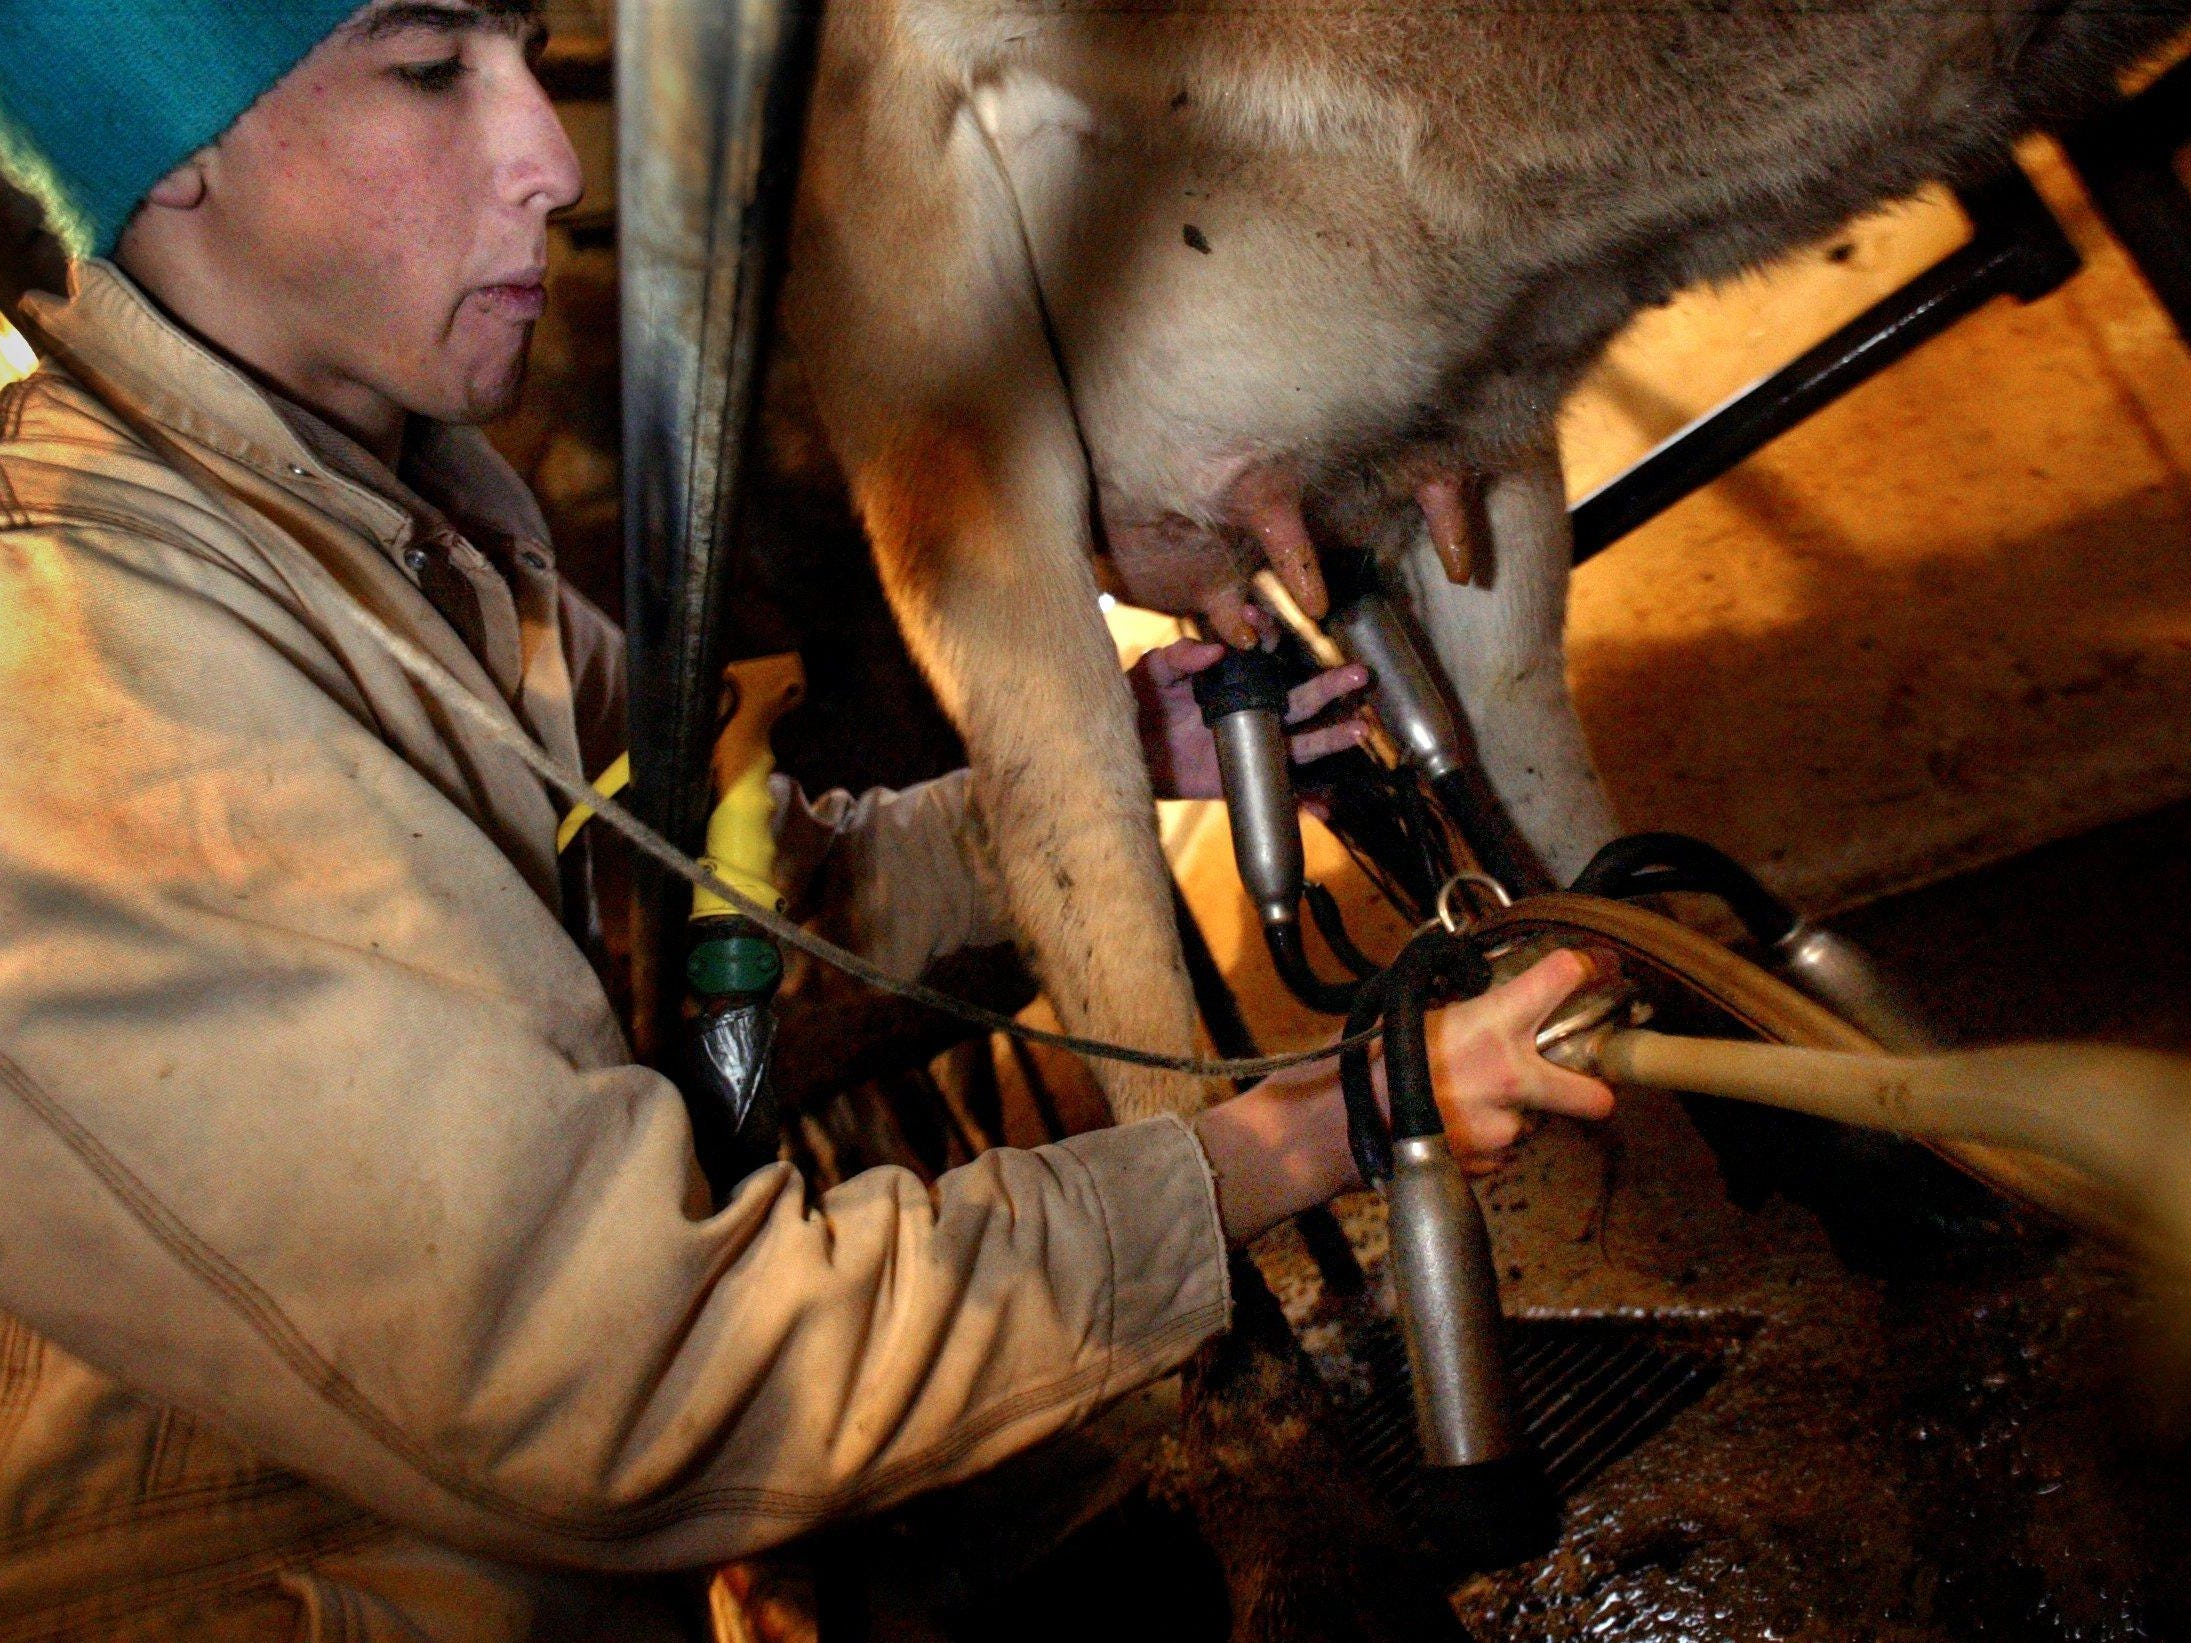 Kyle Nichols, 17, milks one of the dairy cows on his family's farm in Nolensville in 2004.